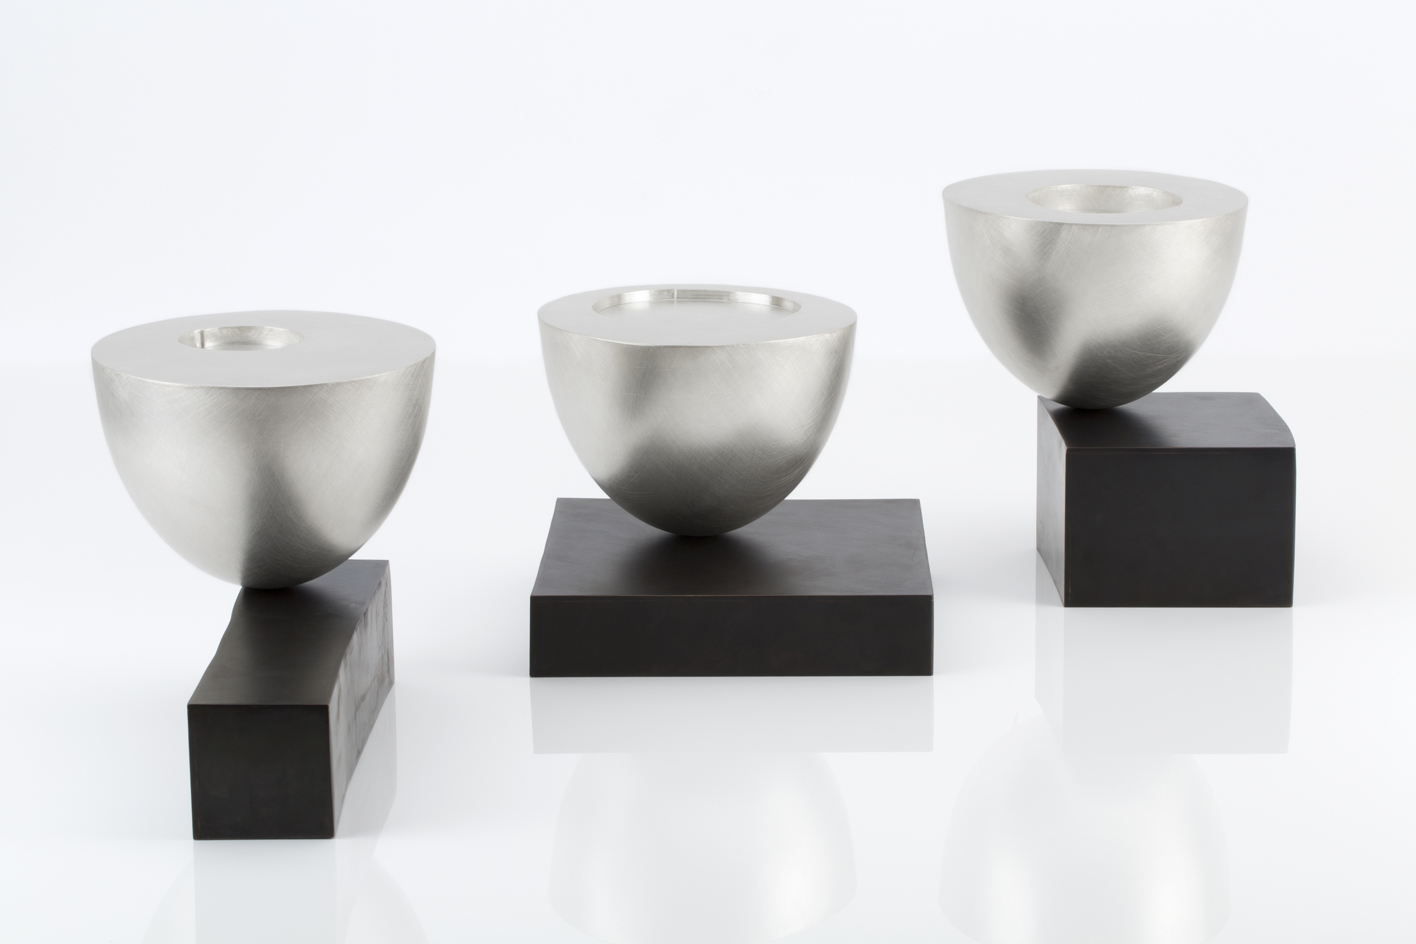 Juliette_Bigley_Balancing_Bowl_1_2_and_3_Patinated_Gilding_Metal_and_Sterling_Silver_2016_2.JPG